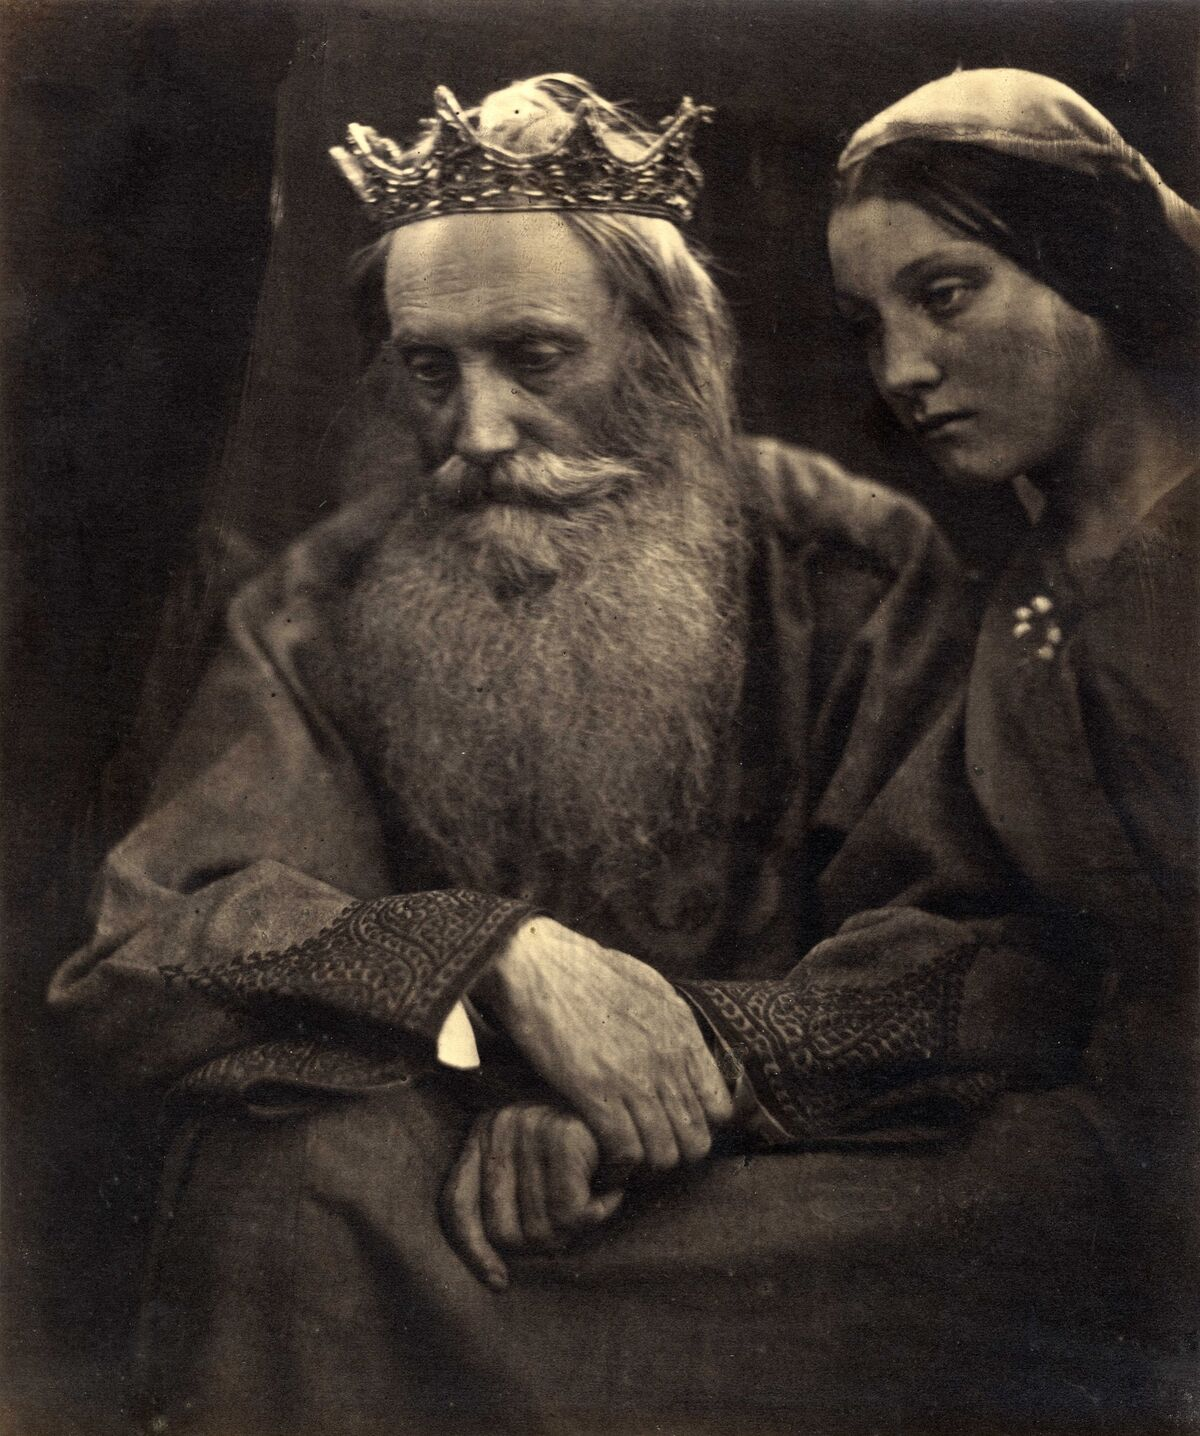 Julia Margaret Cameron. King David and Bathsheba (Henry Taylor and Mary Hillier), 1869. Courtesy of The Barnes Foundation, Michael Mattis and Judy Hochberg.